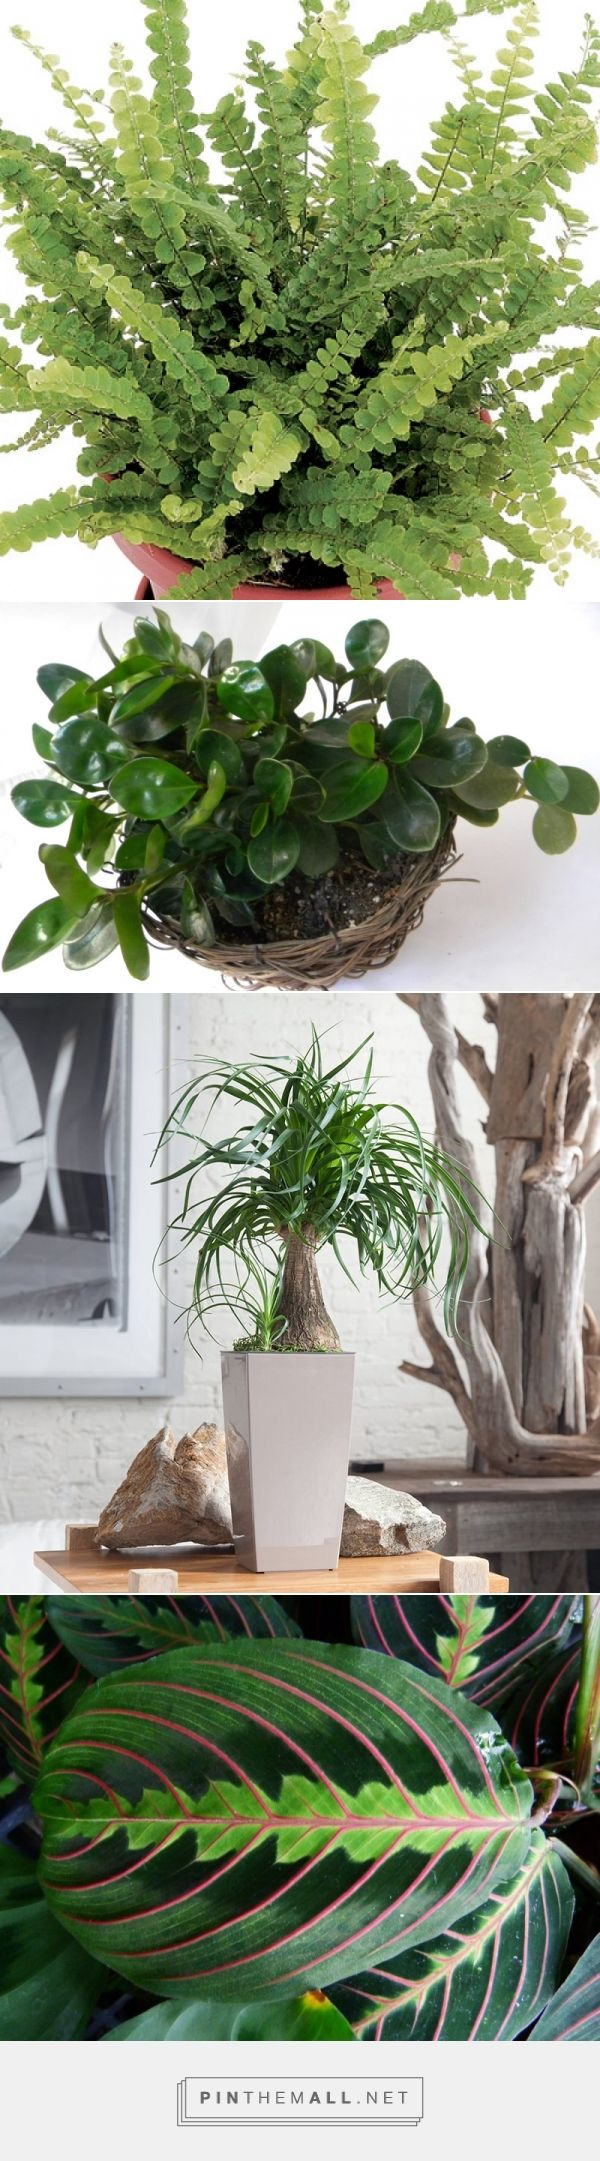 316 best images about indoors plants containers on for Prayer palm plant